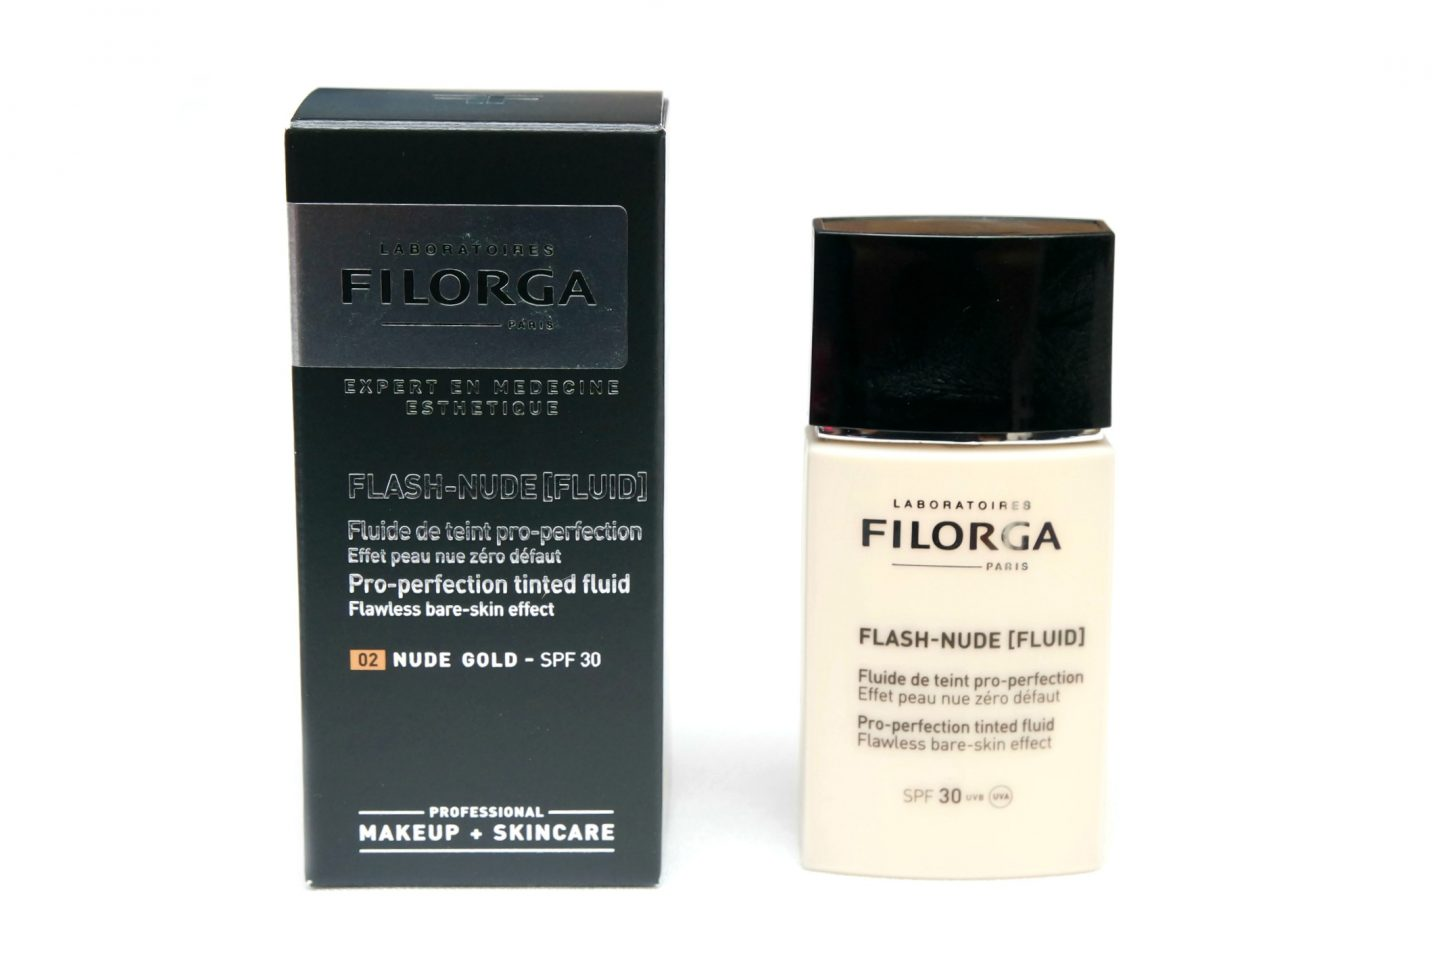 Filorga make-up